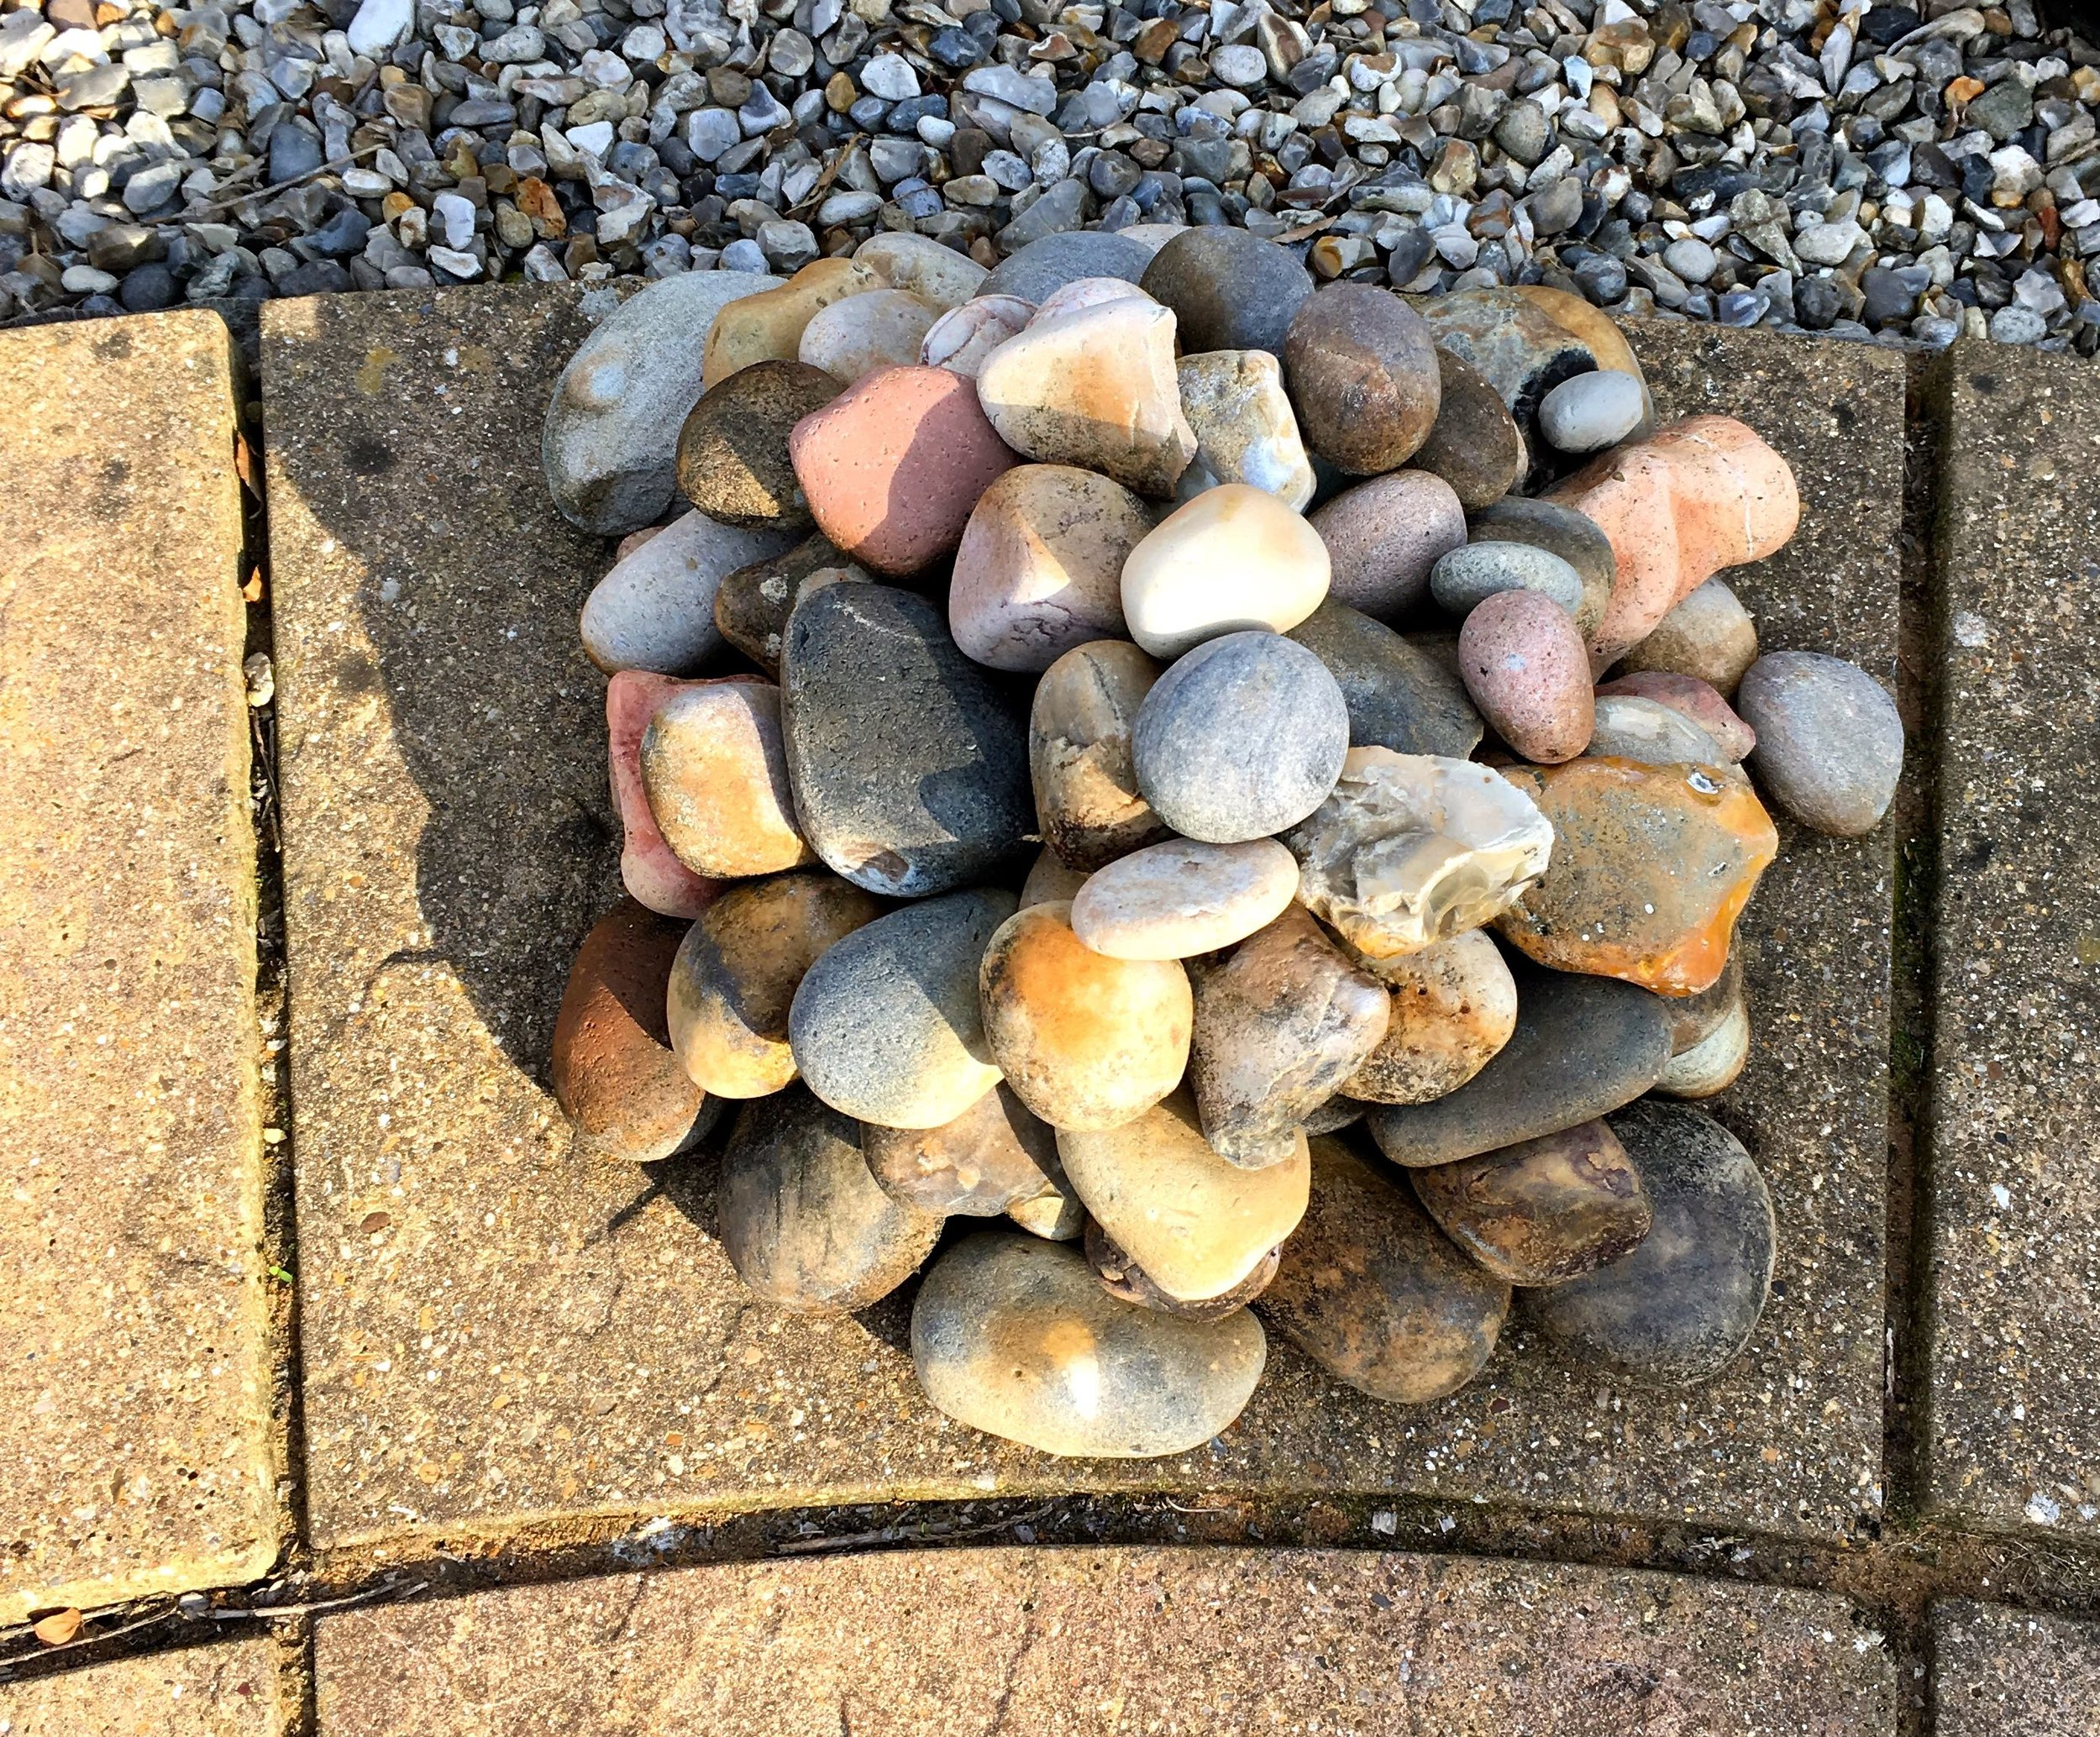 And a pile of stones in dad's norfolk garden